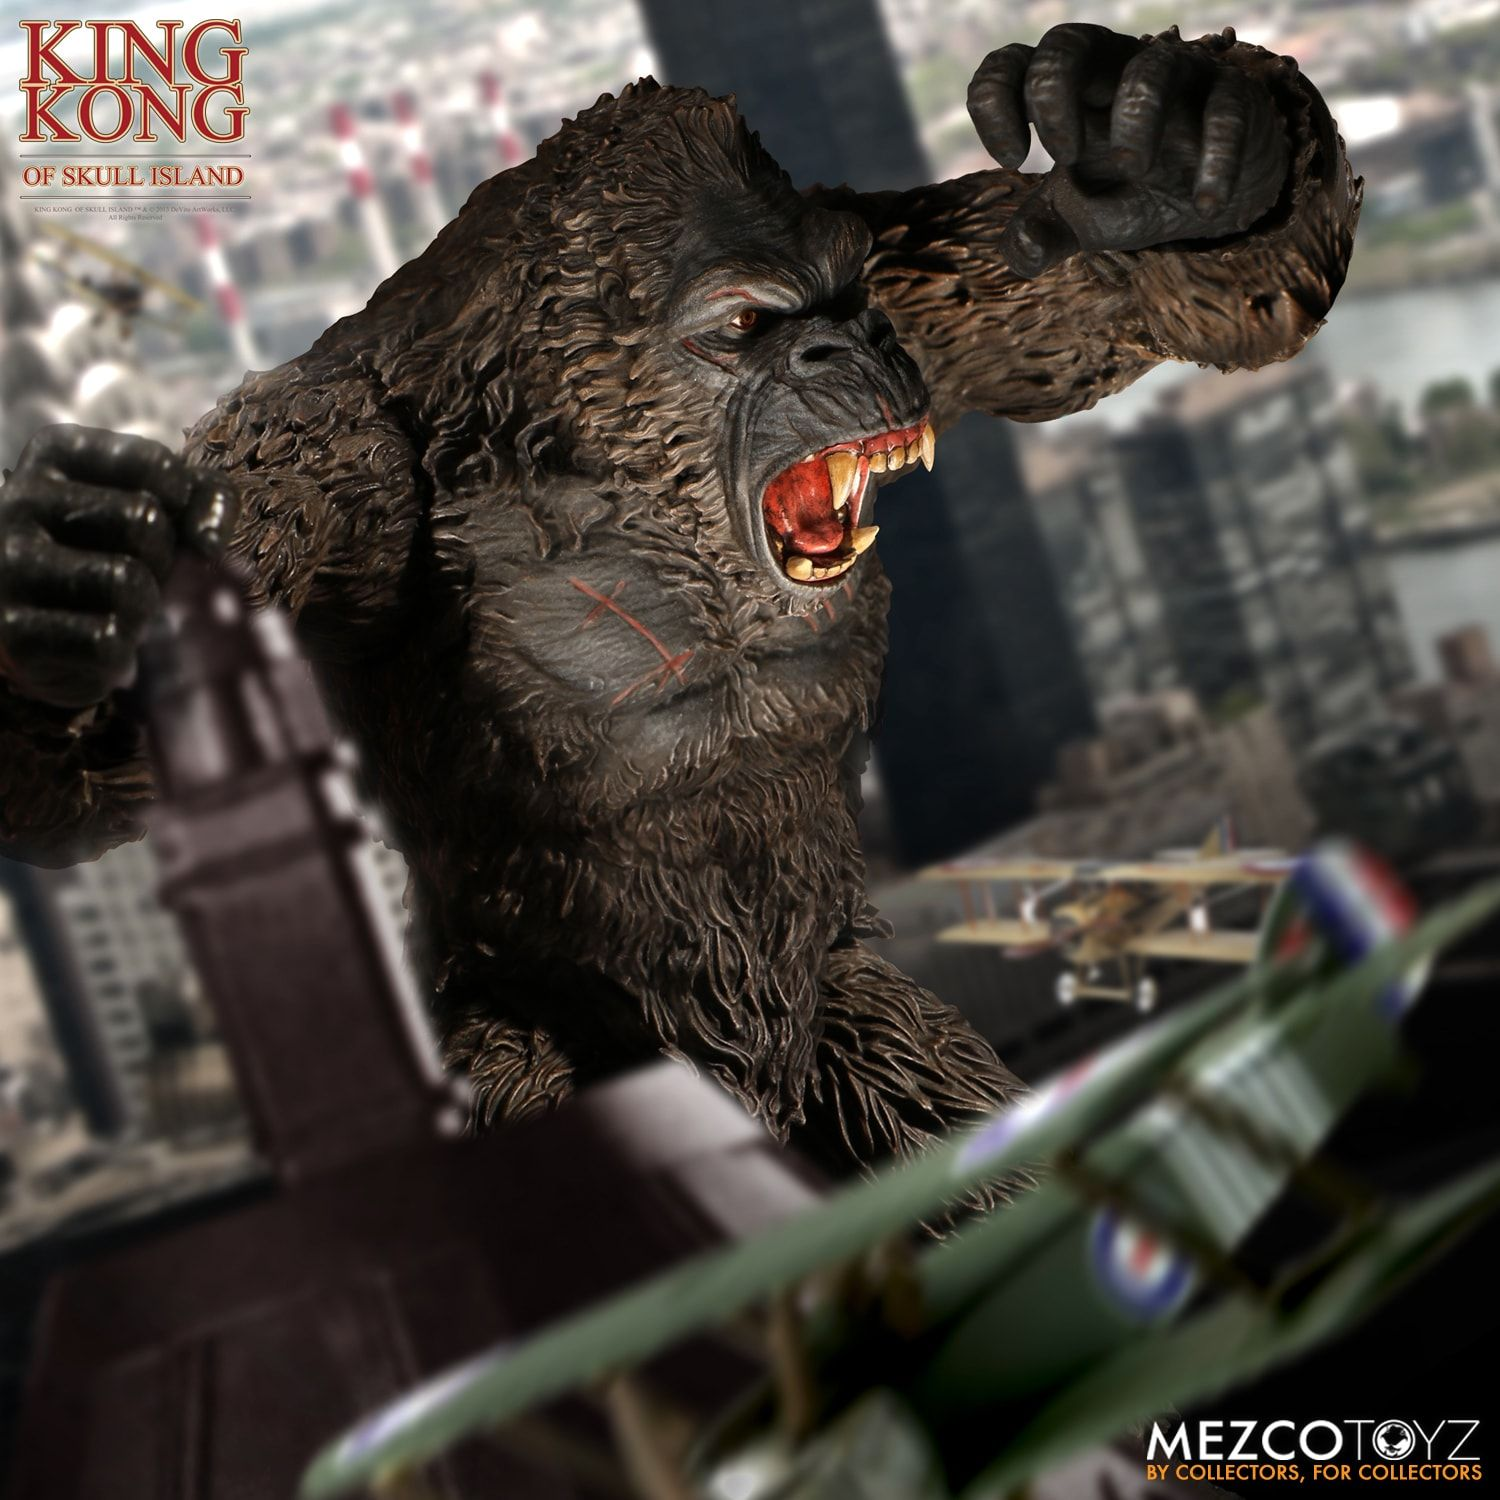 Mezco-Ultimate-Kong-4